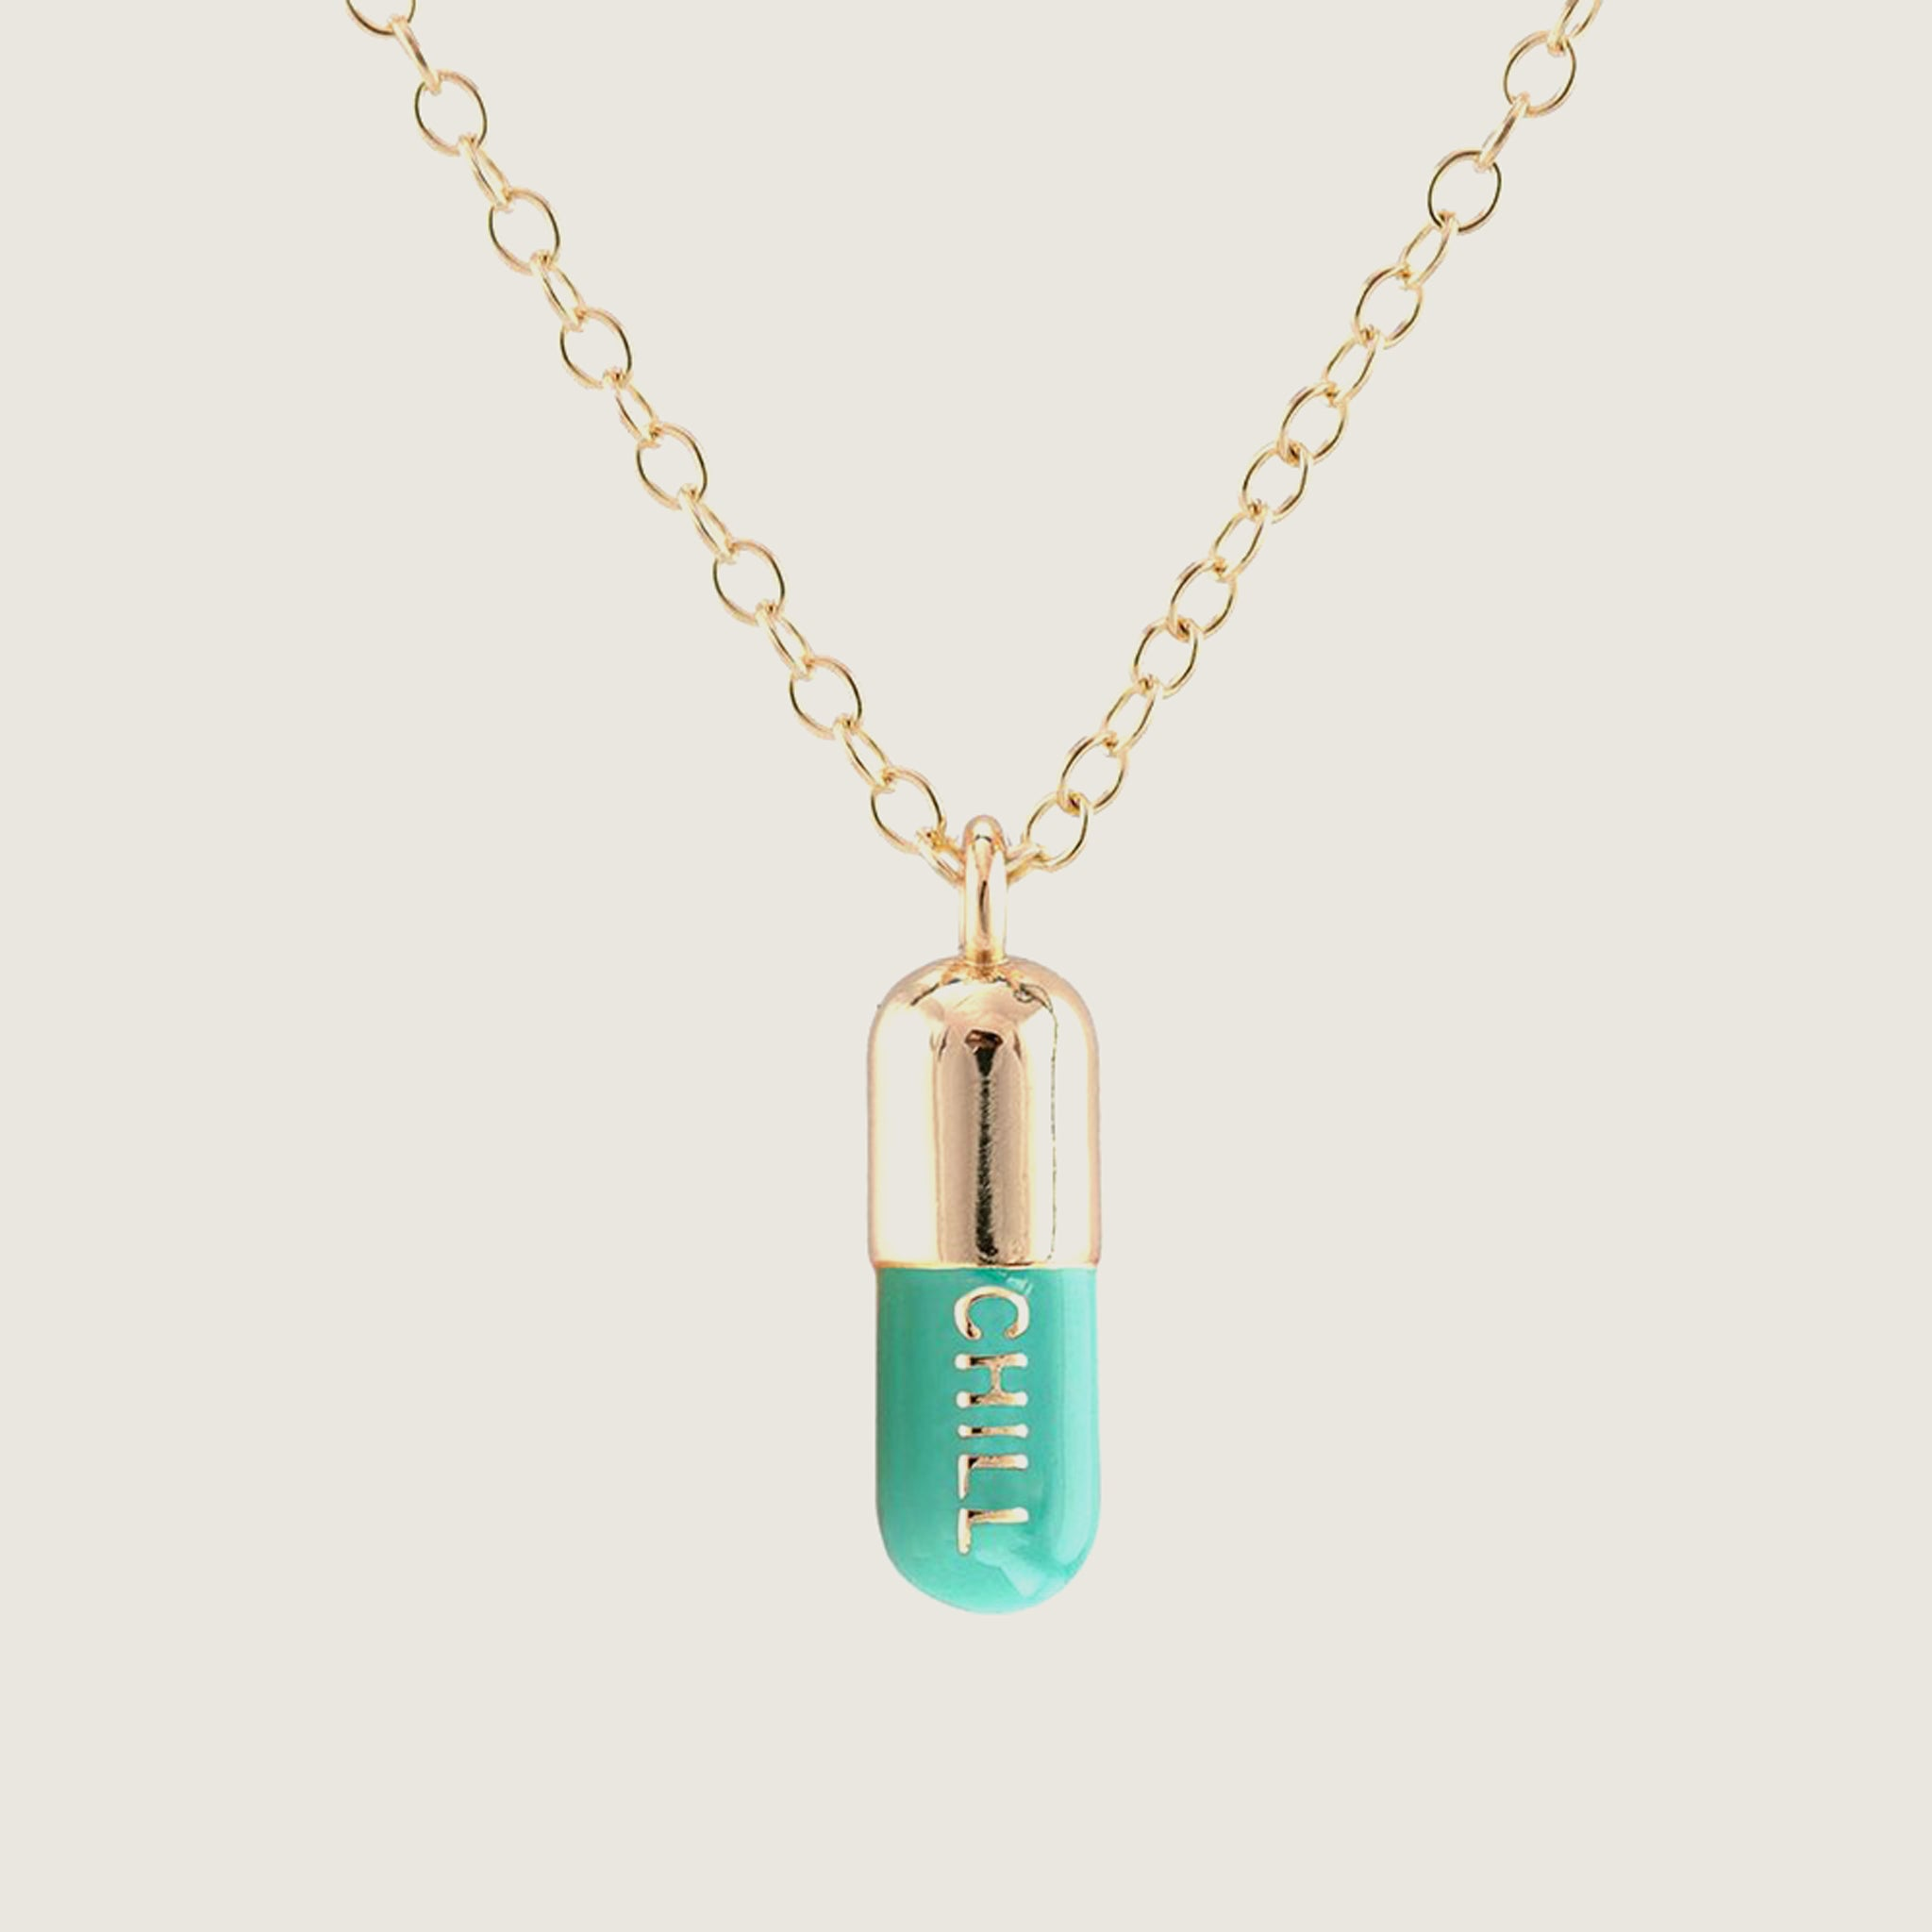 Chill Pill Necklace - Blackbird General Store